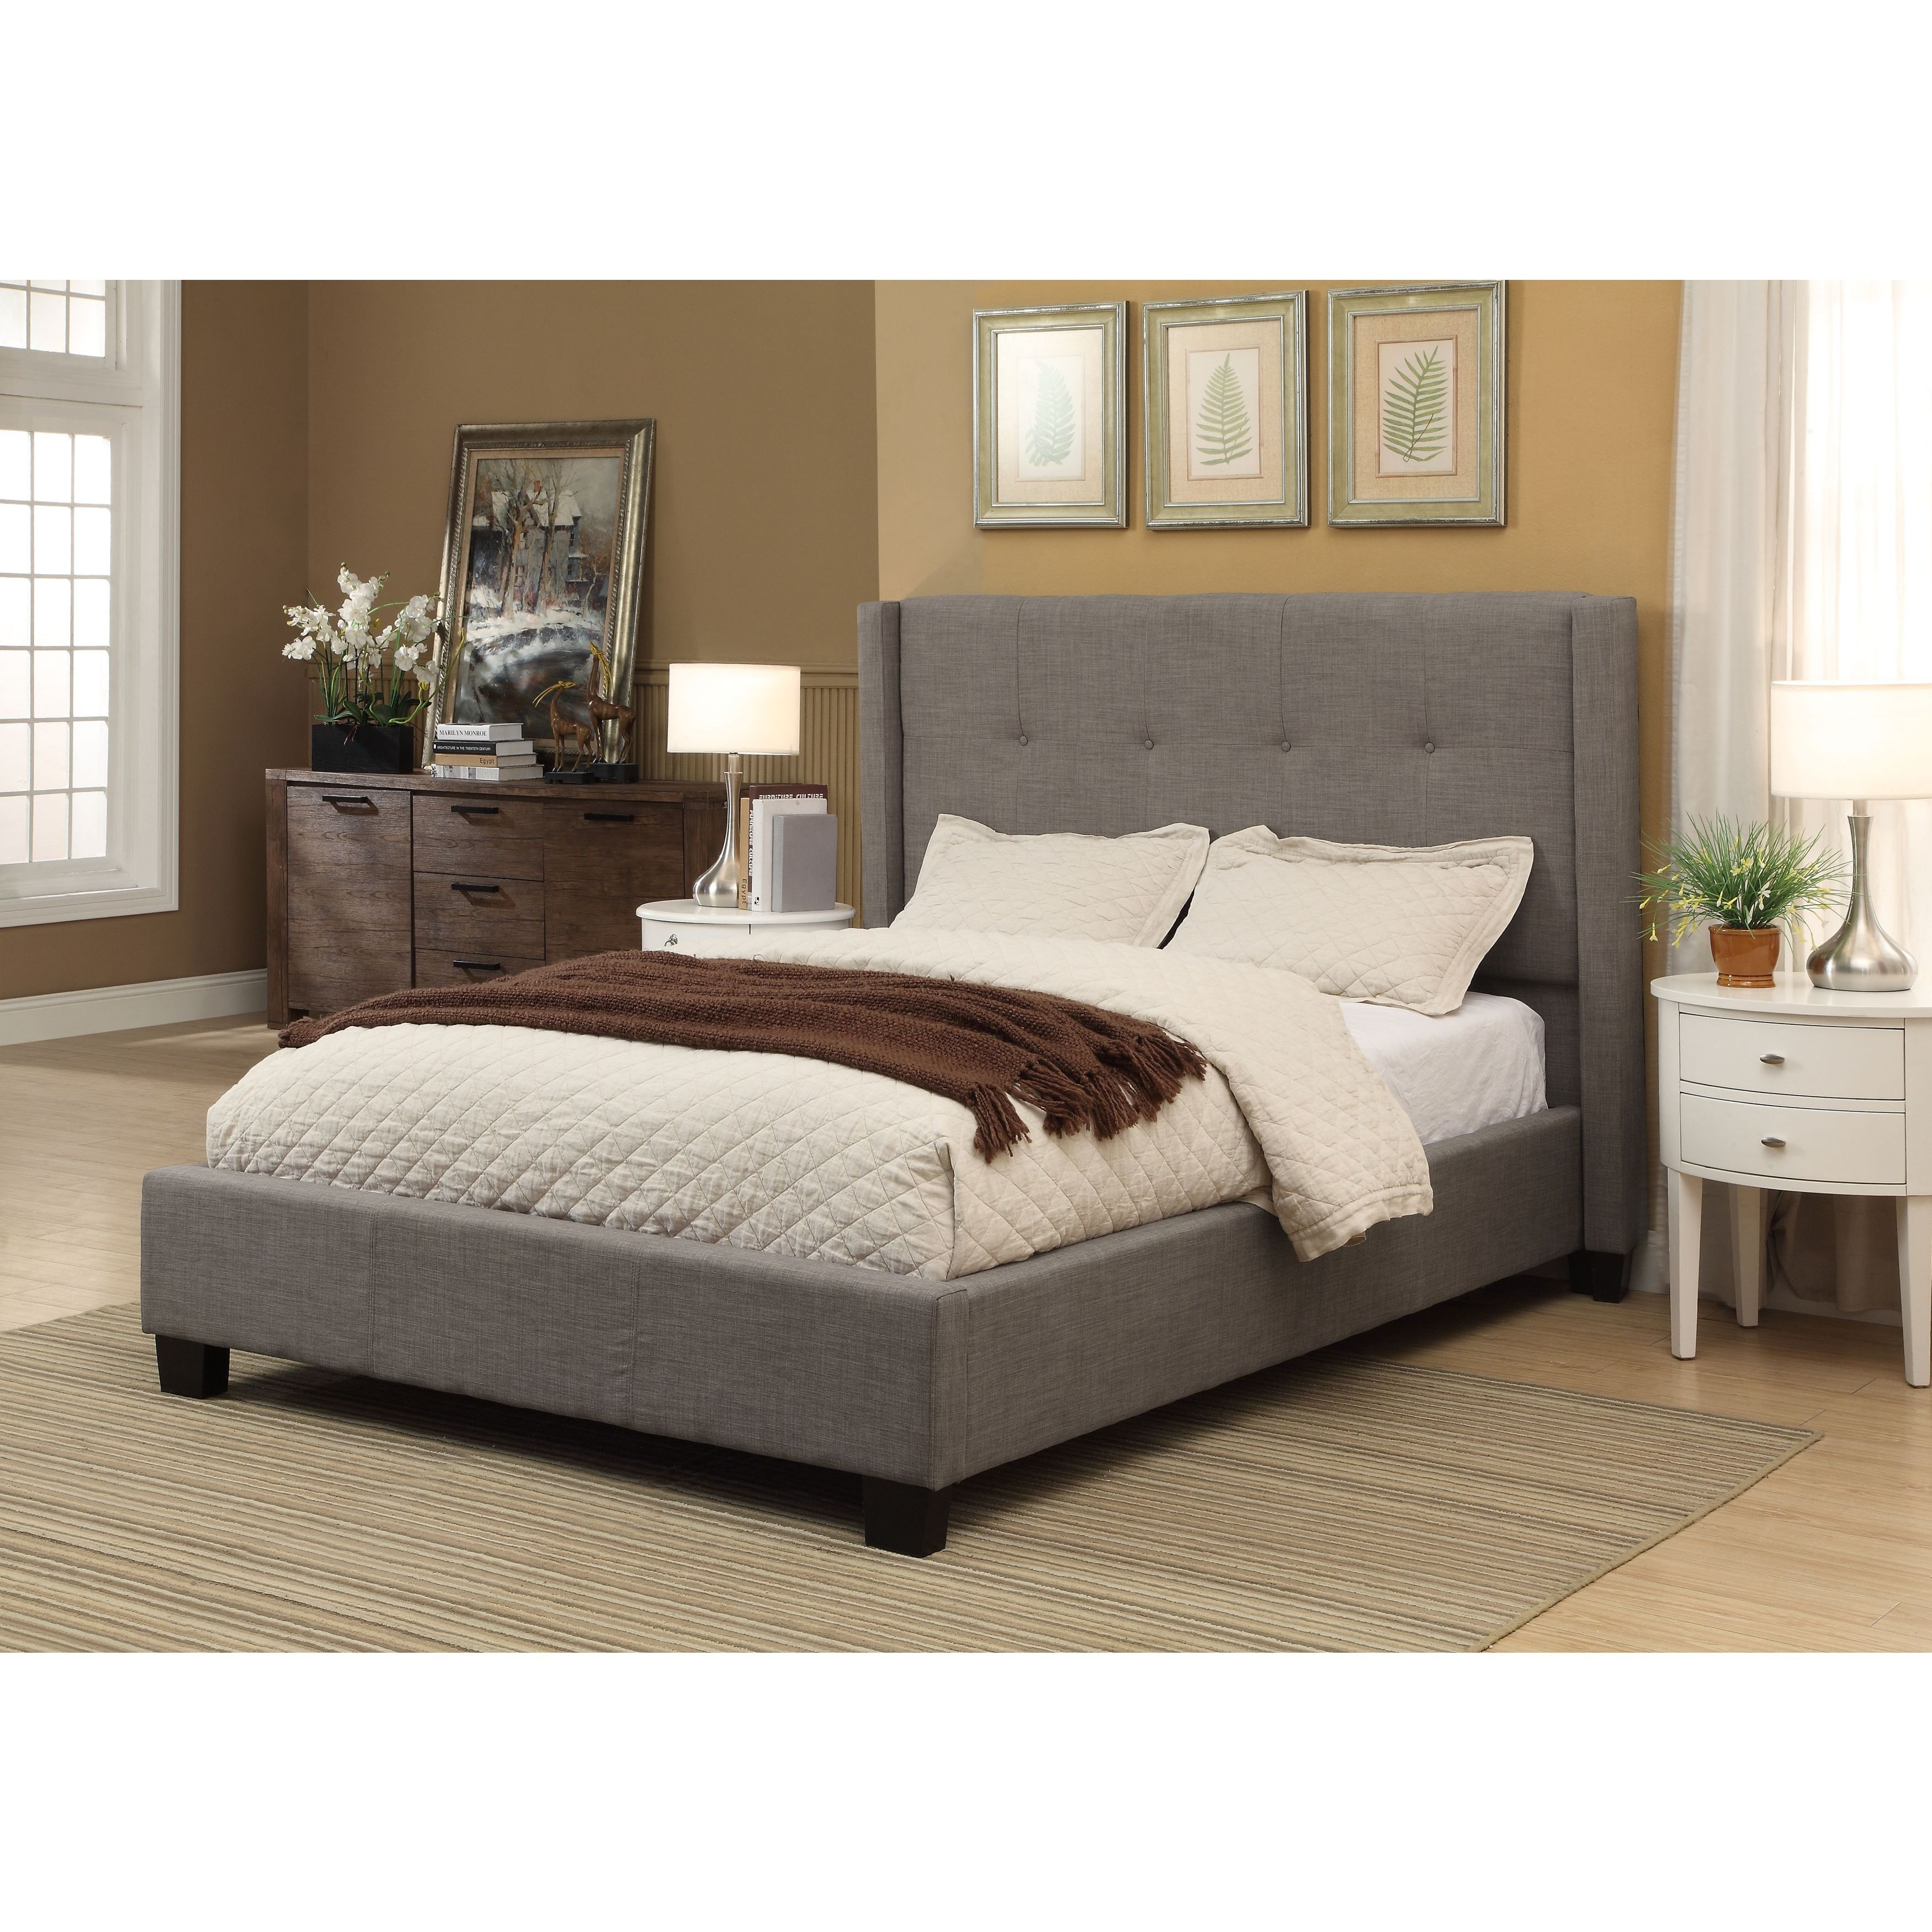 Shop Madeleine Wingback Platform Bed   Free Shipping Today   Overstock.com    10608405